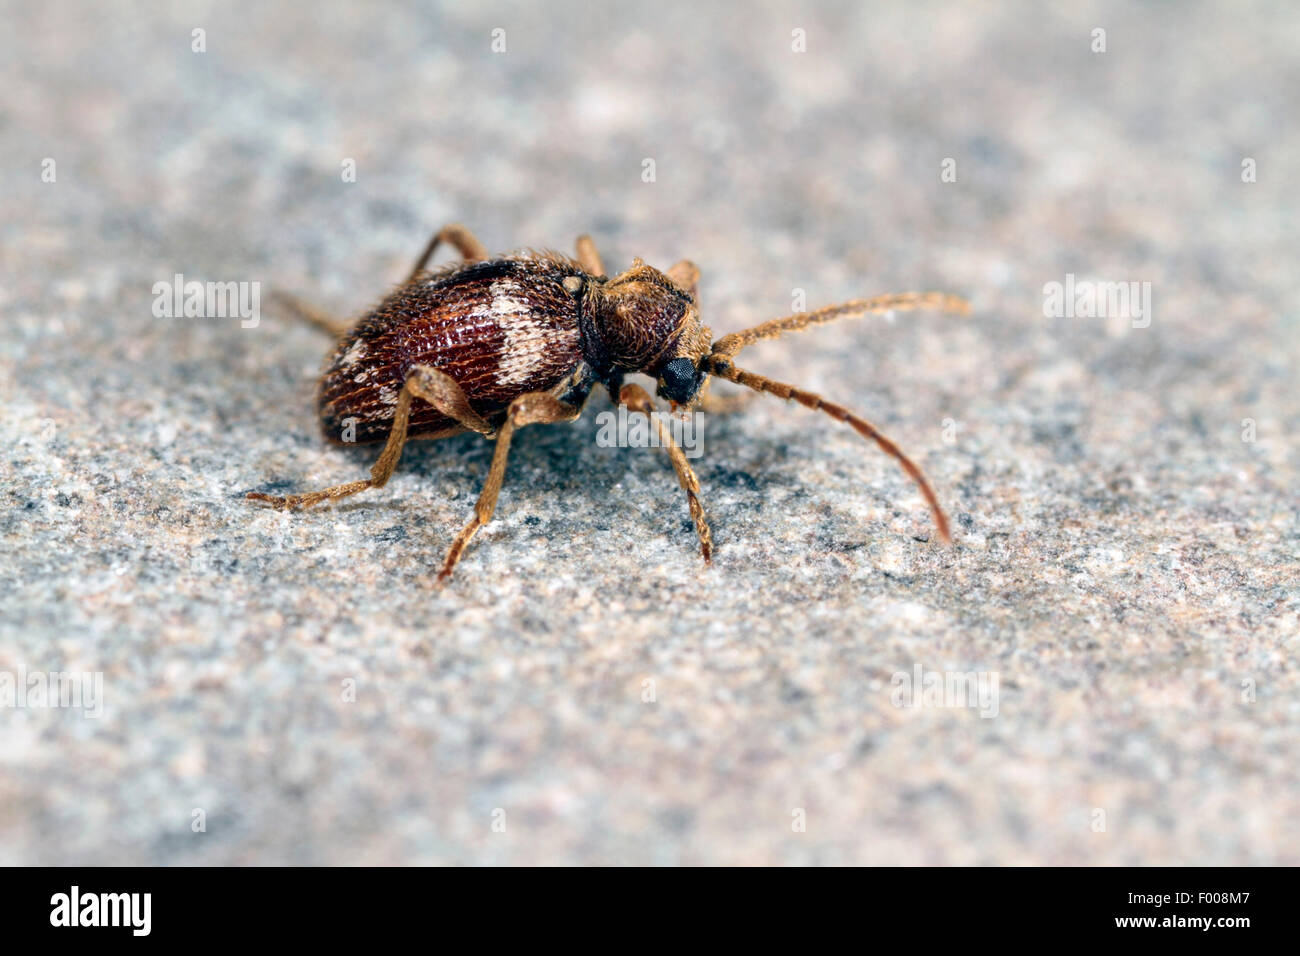 Furniture beetle stockfotos furniture beetle bilder alamy for Boden deutschland